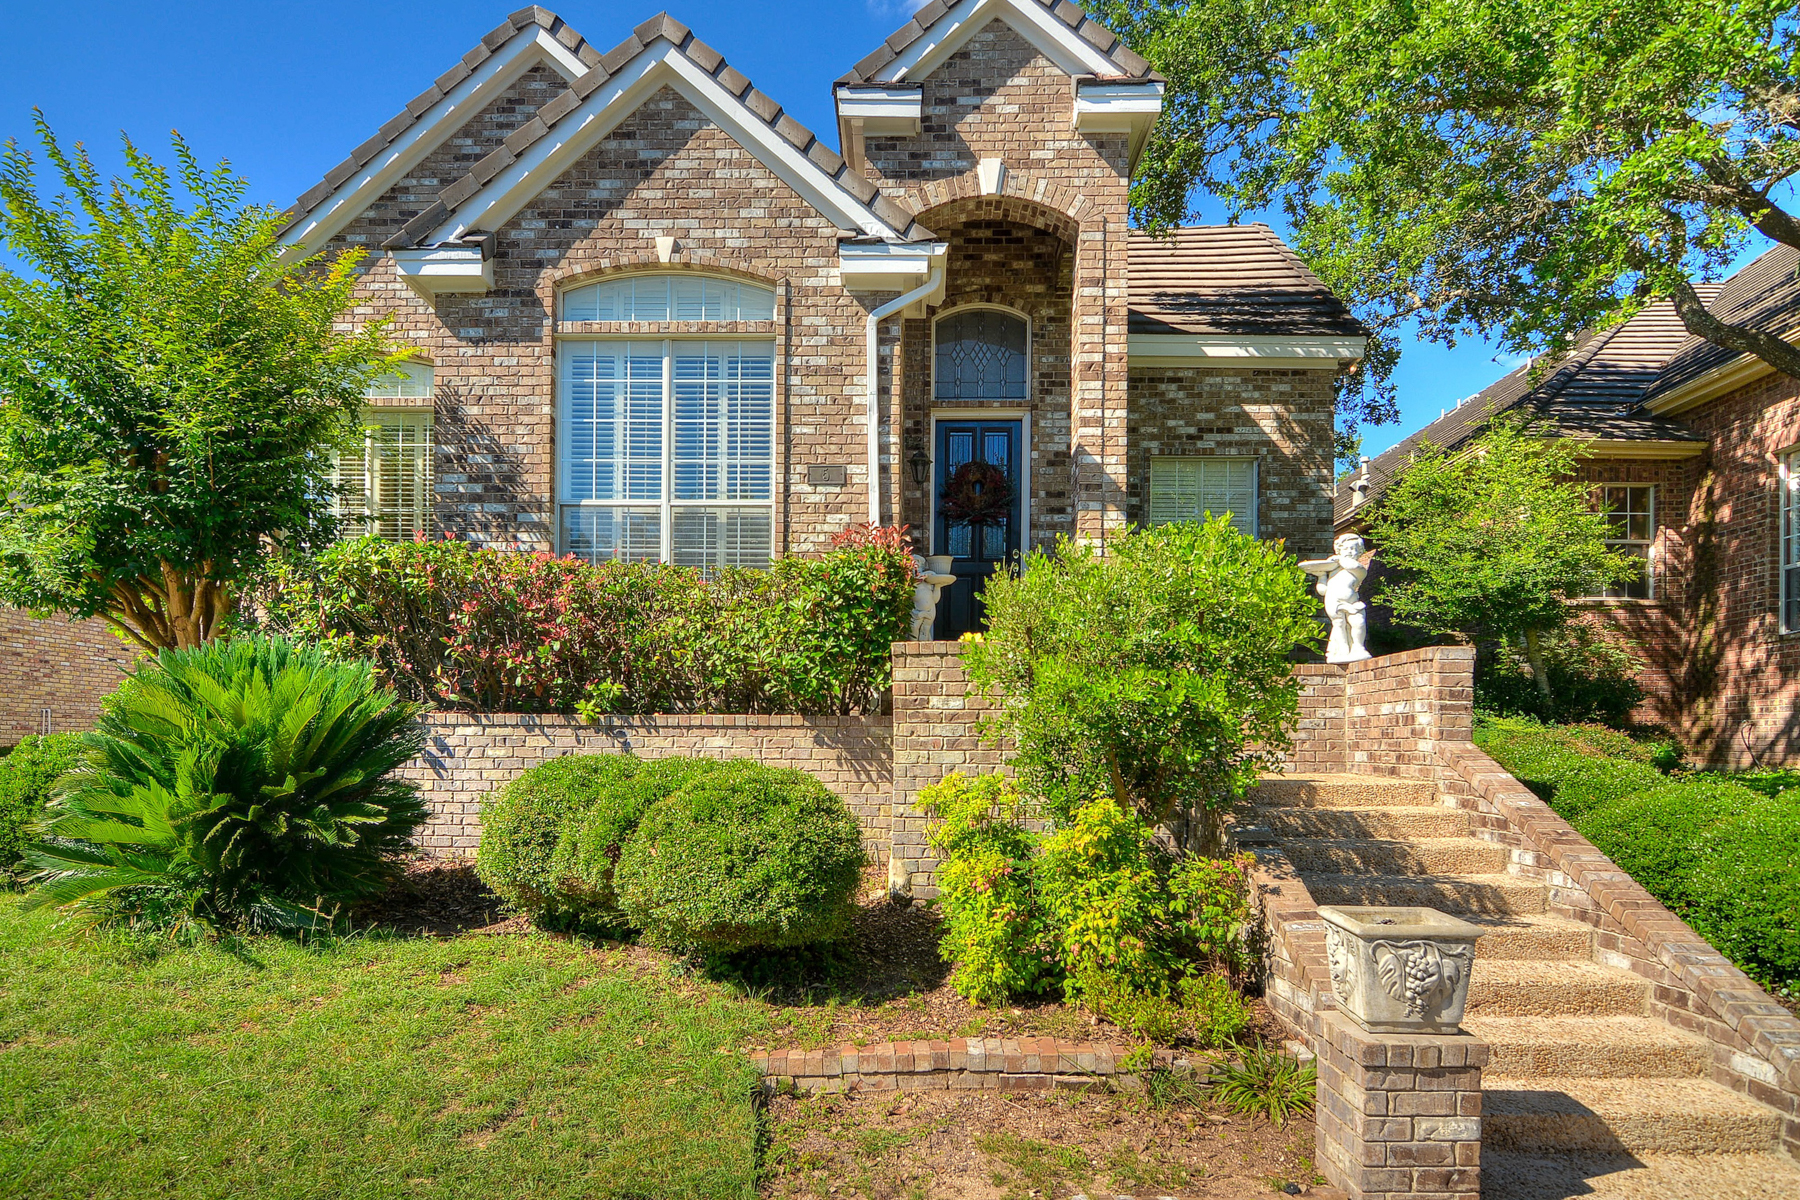 Additional photo for property listing at One-Story Garden Home in The Dominion 5 Somerset Arms San Antonio, Texas 78257 Estados Unidos